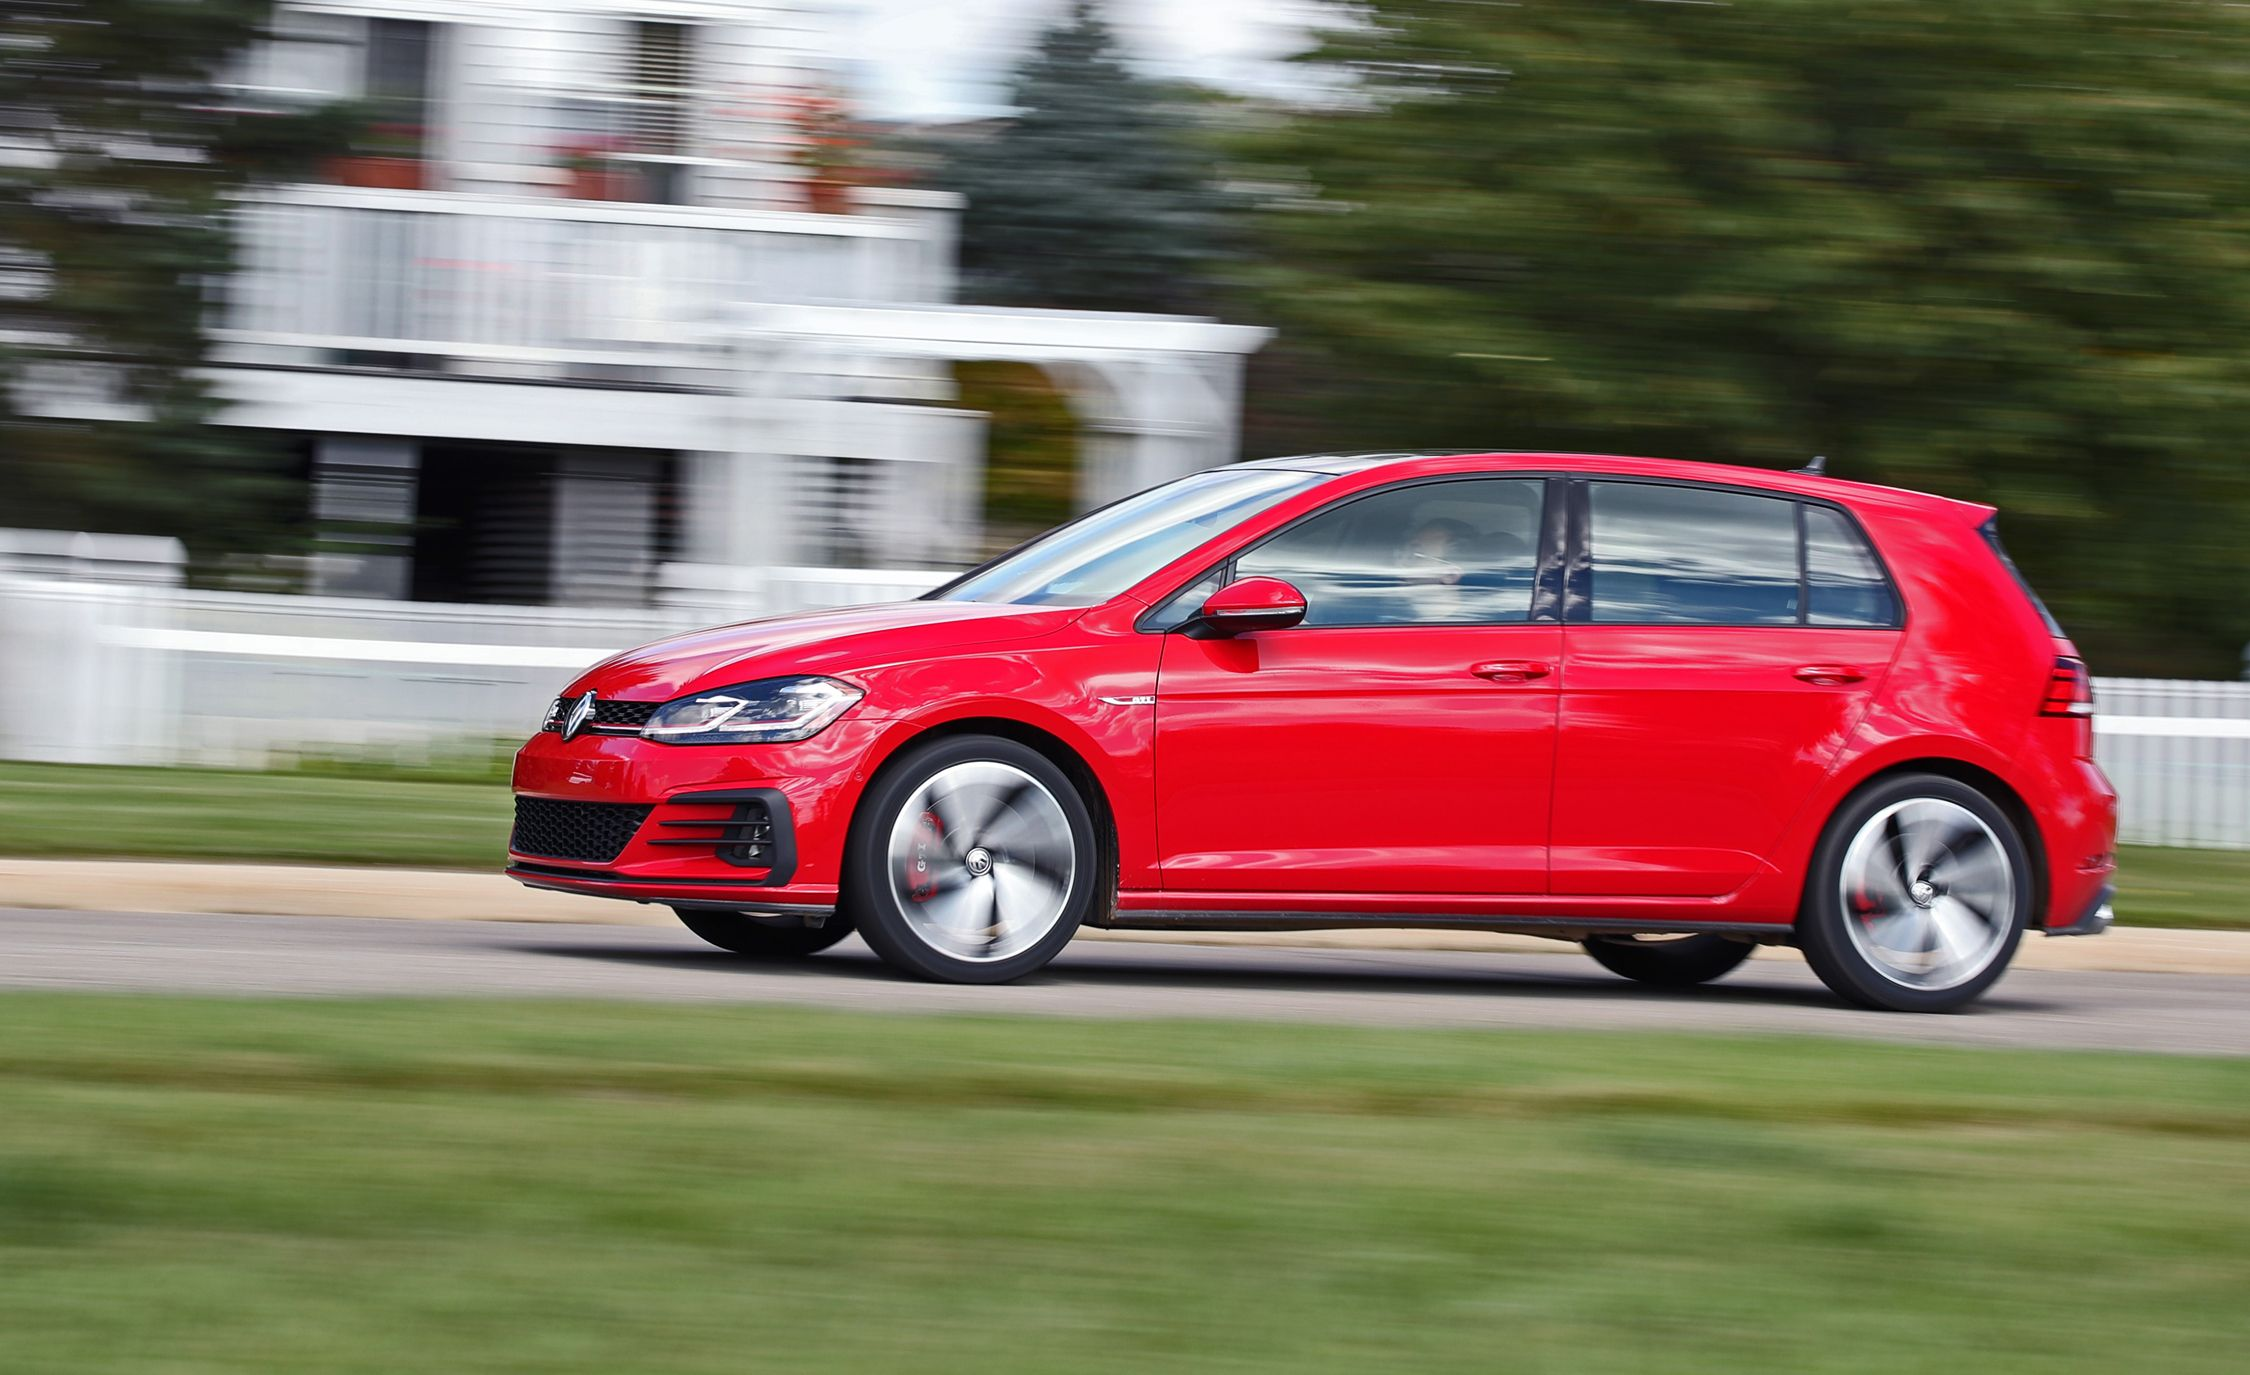 2019 Volkswagen Golf GTI Reviews | Volkswagen Golf GTI Price, Photos, and  Specs | Car and Driver